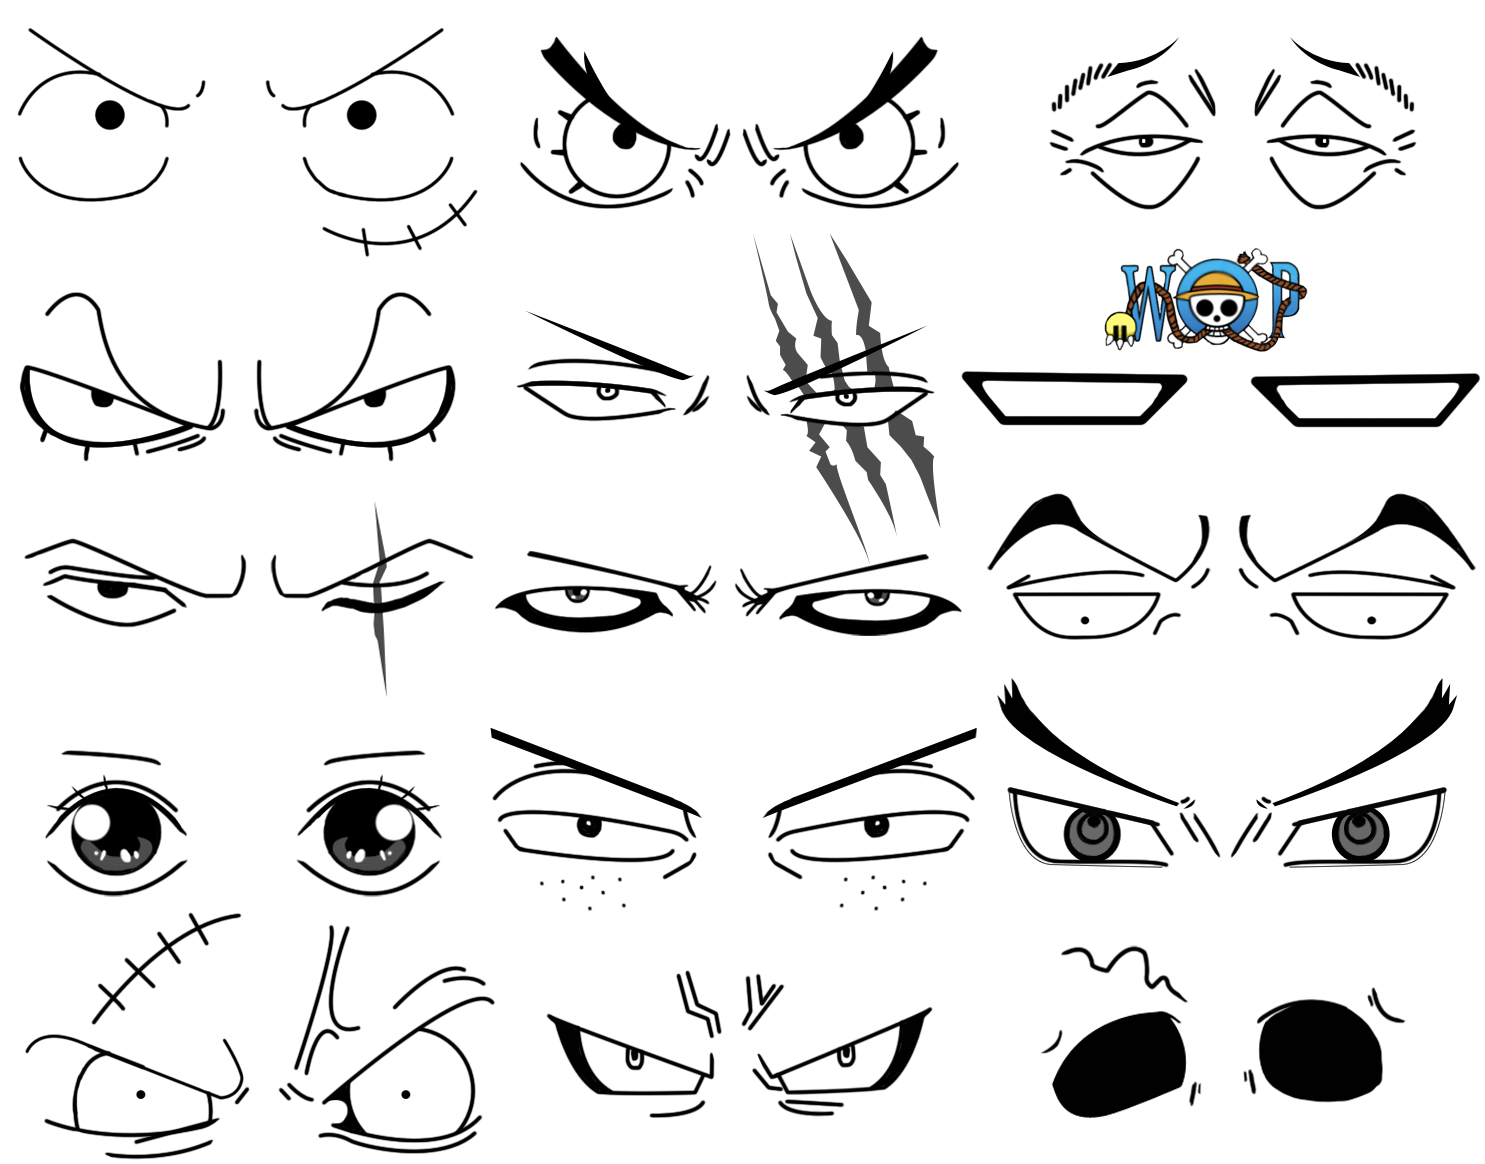 Eyes ONE PIECE Onepiece イラスト, キャラクターデザイン, イラスト